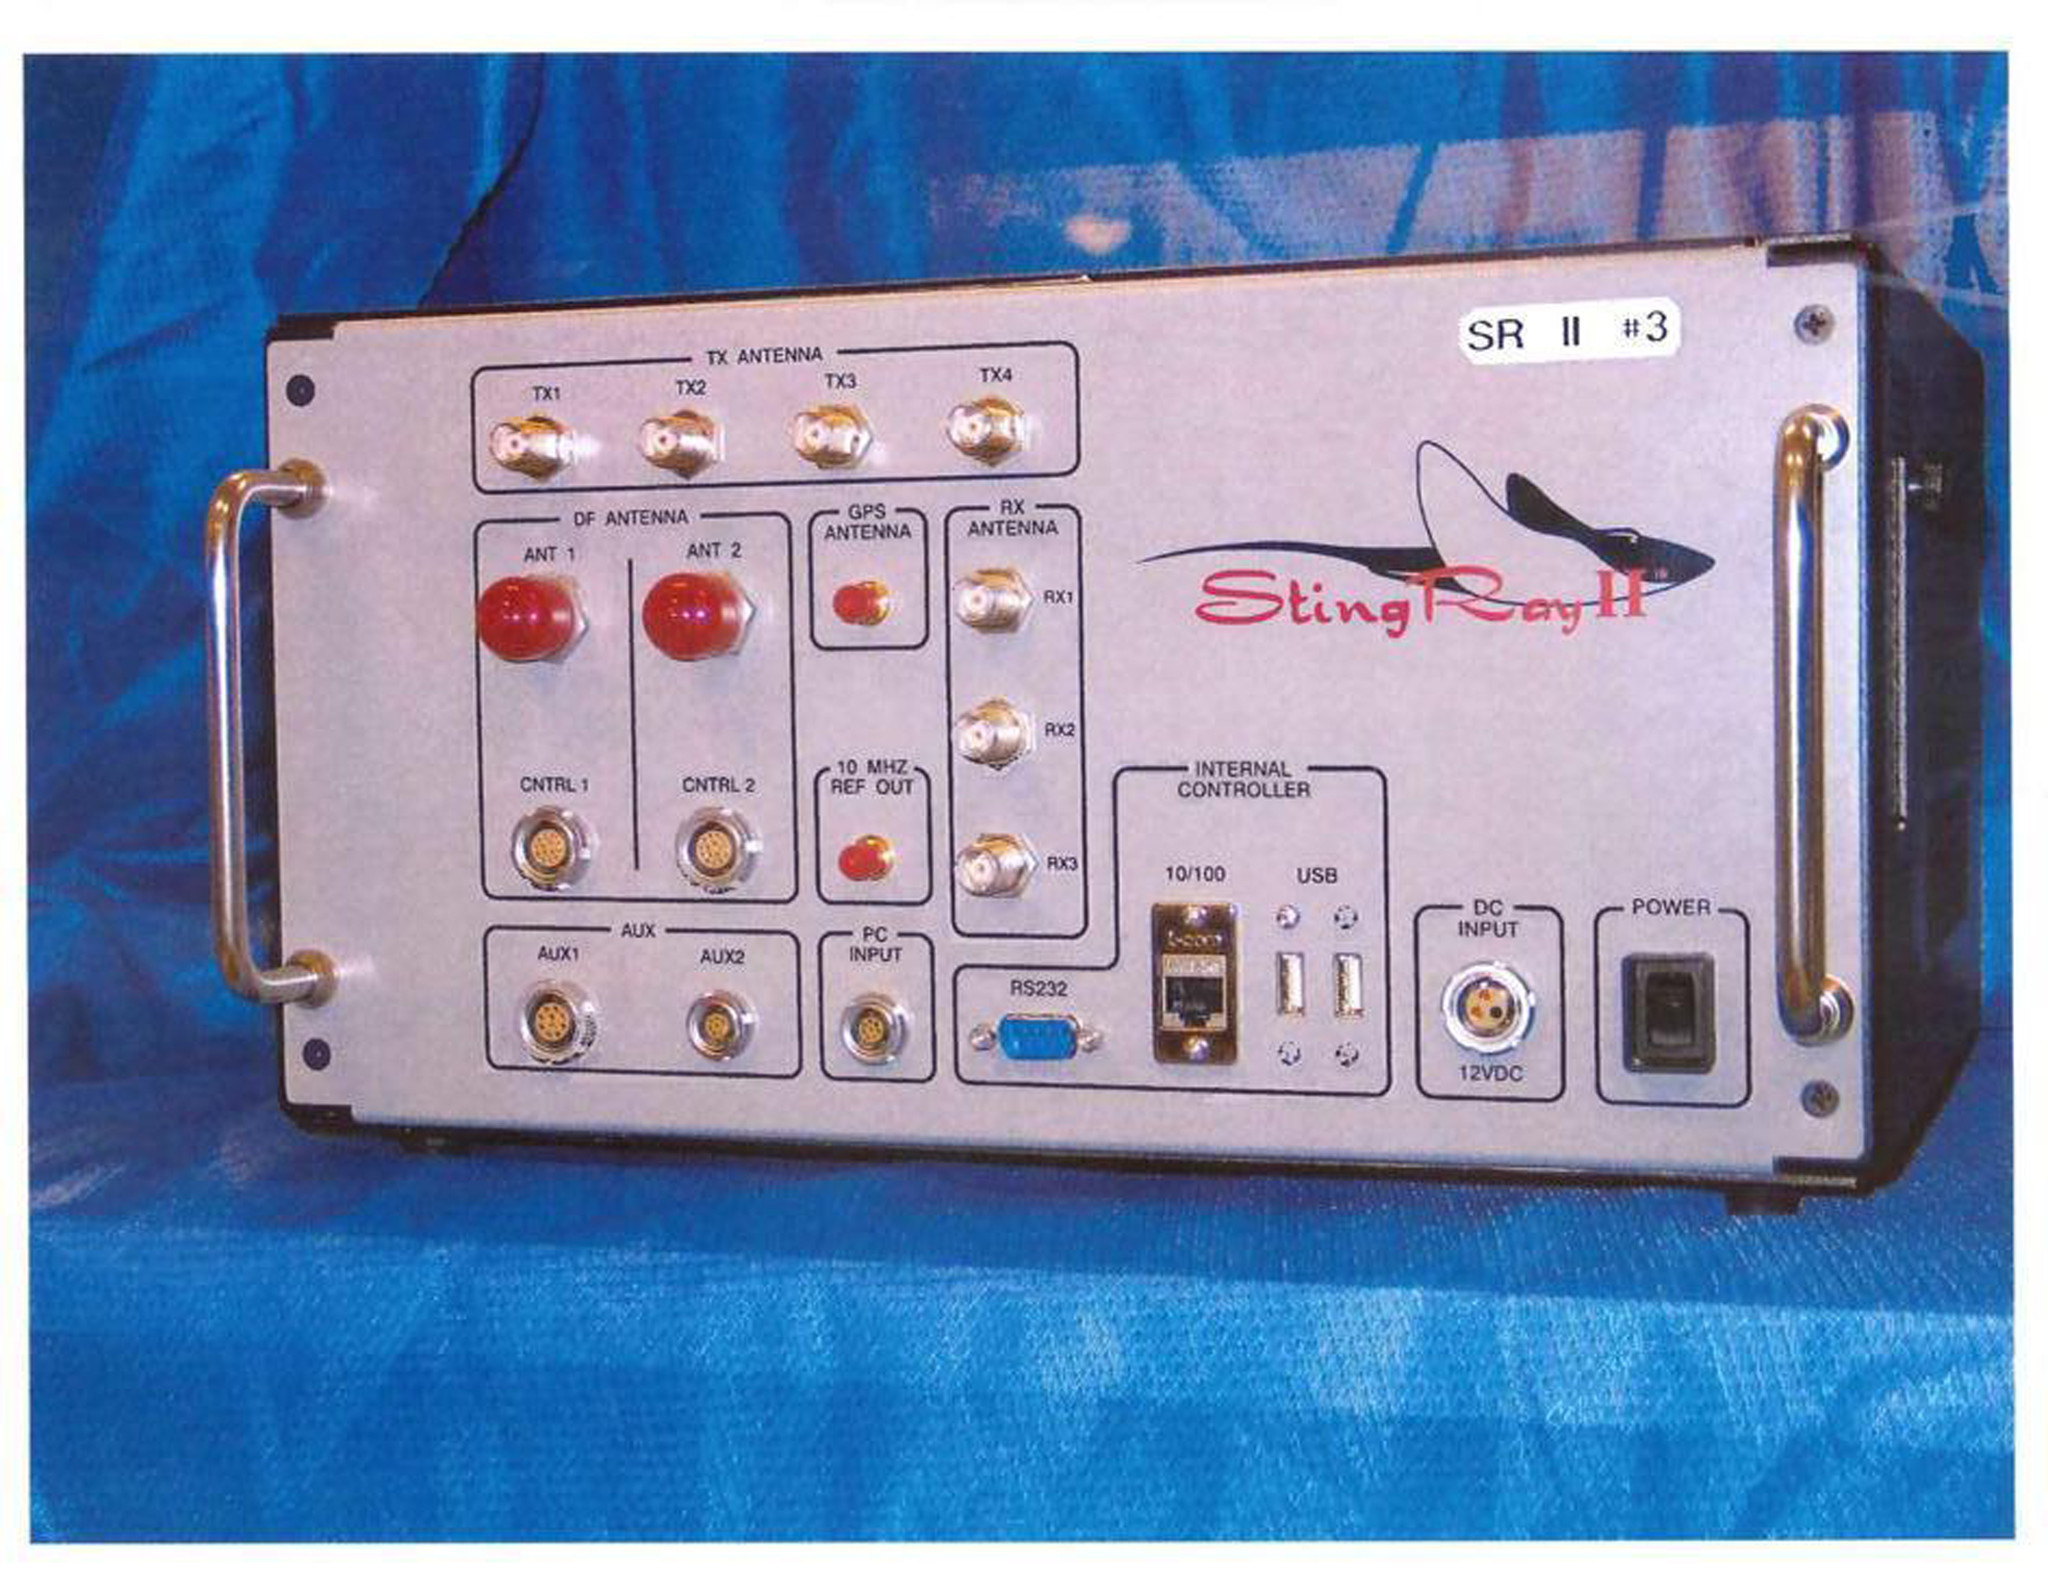 Fcc Complaint Baltimore Police Breaking Law With Use Of Stingray Phone Trackers Sun